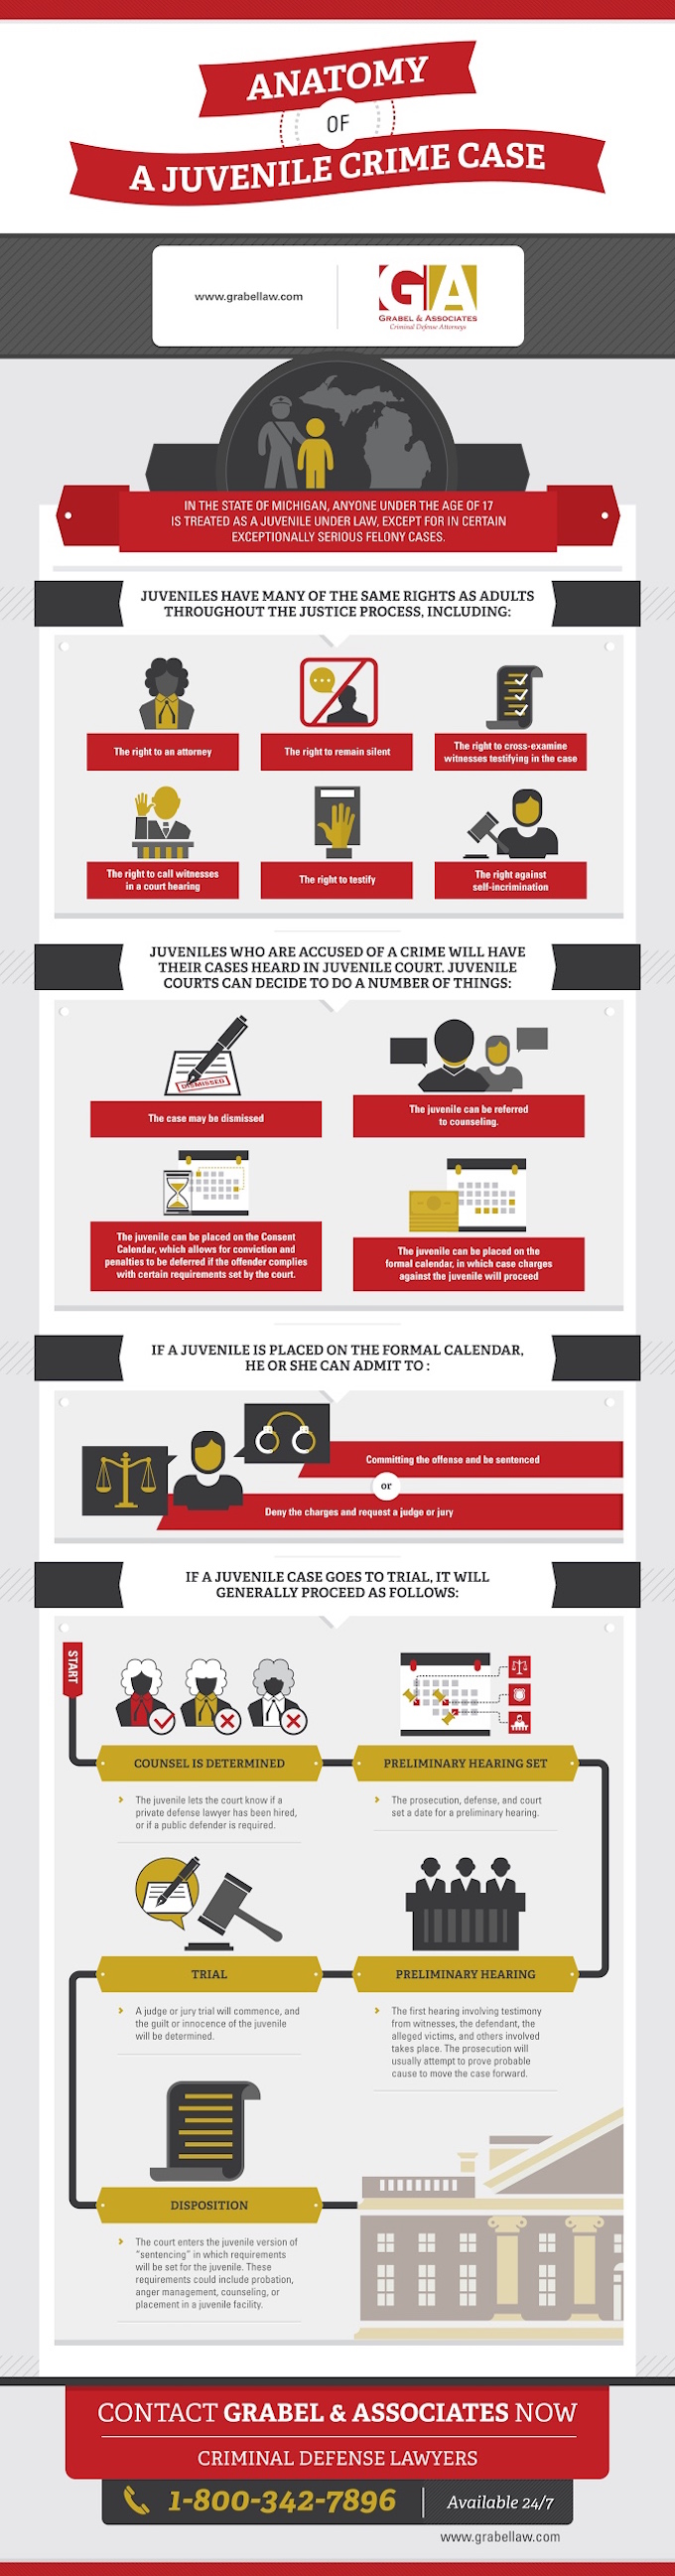 Anatomy of a Juvenile Crime Case infographic